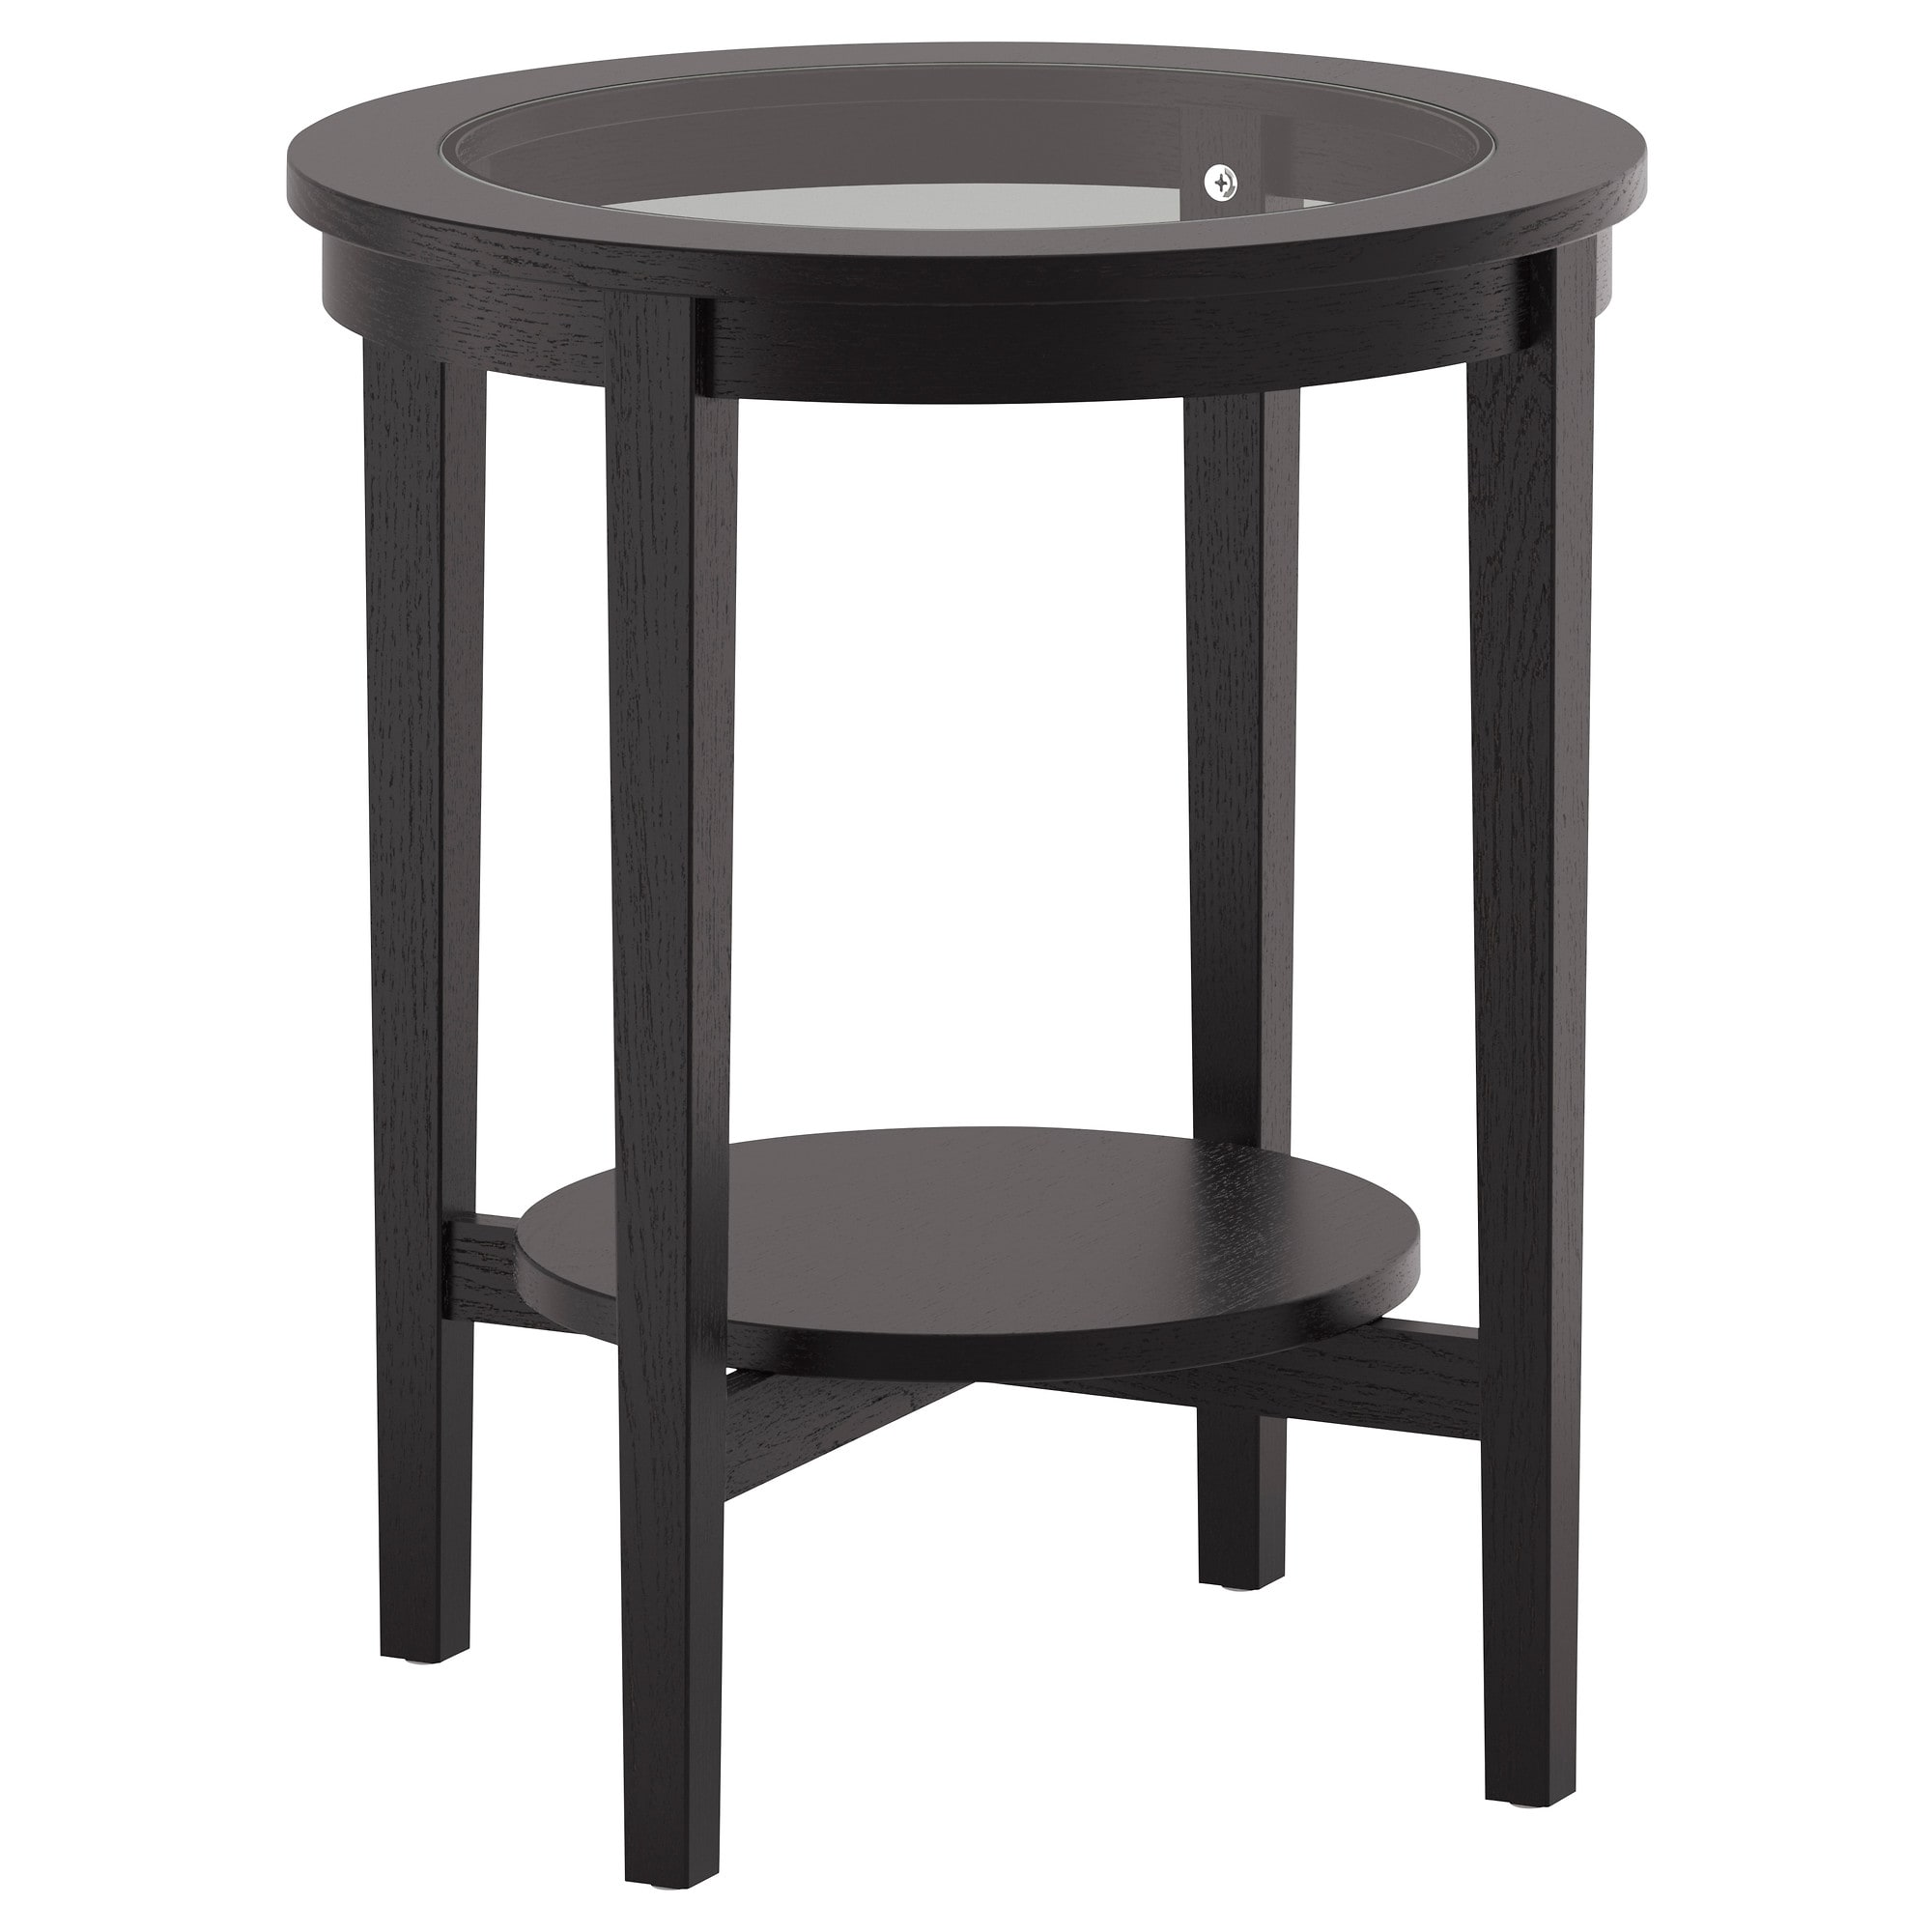 side tables nest ikea malmsta table black brown tall accent with storage veneered surface gives the natural look and feel small couch end mango dining wrought iron lamps boxes